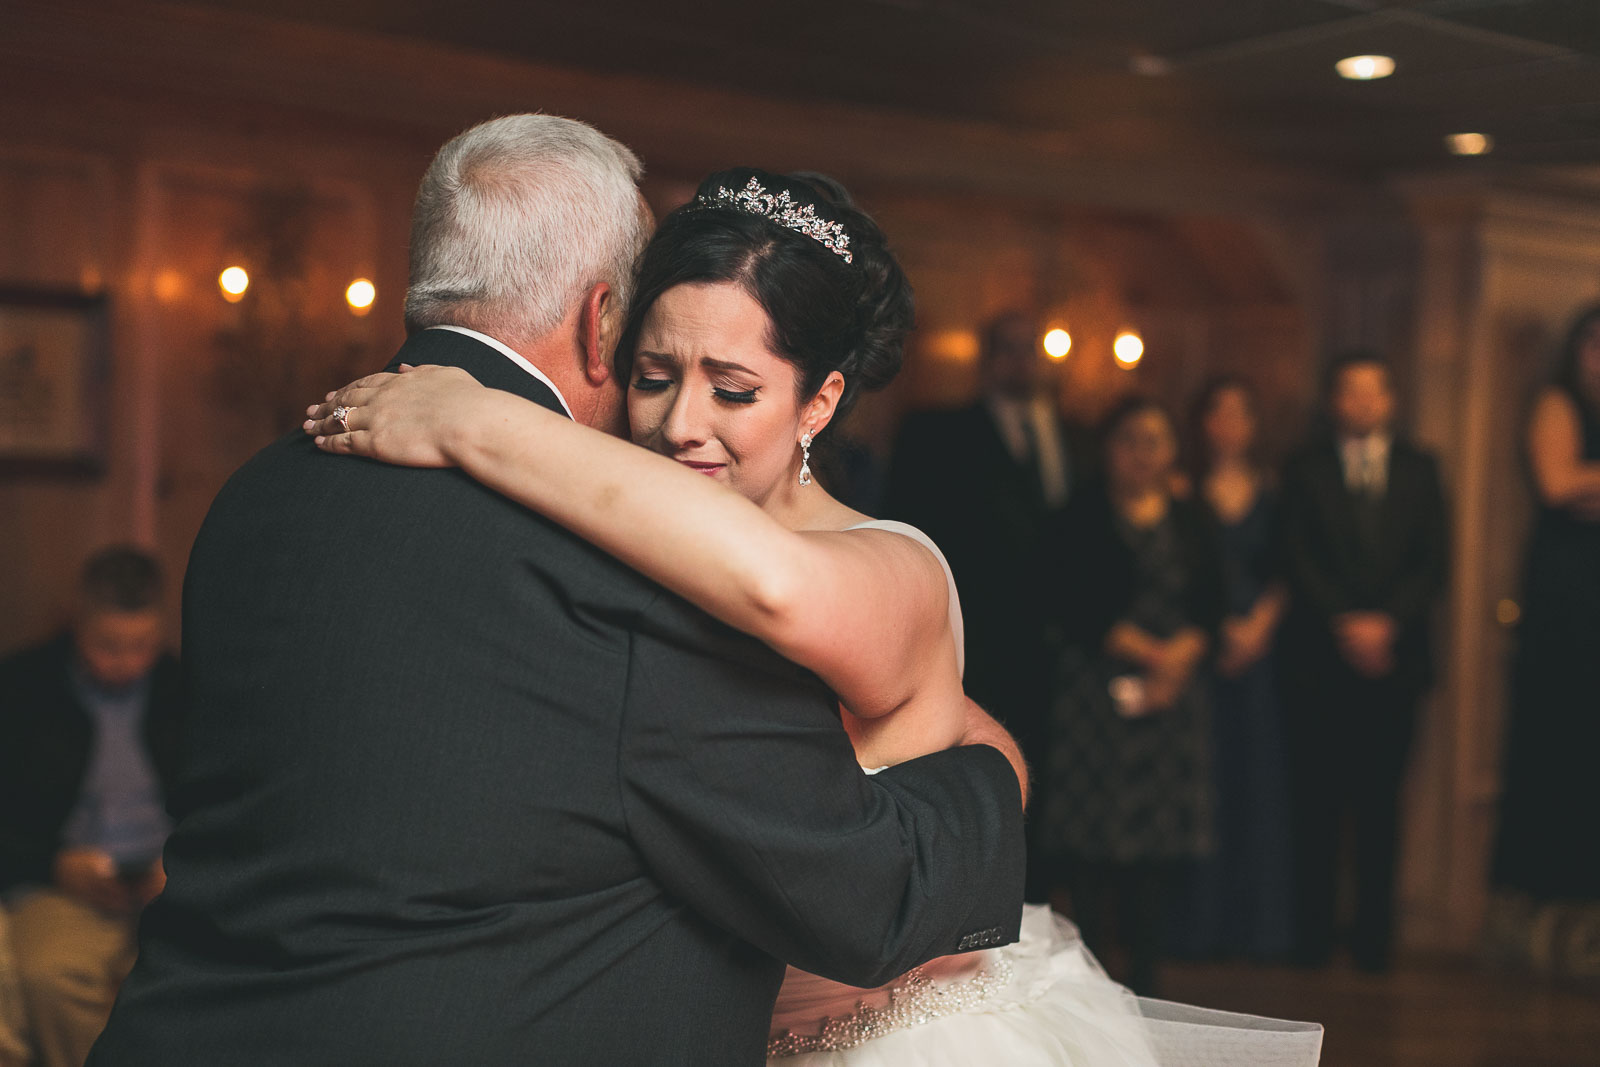 Father dances with daughter